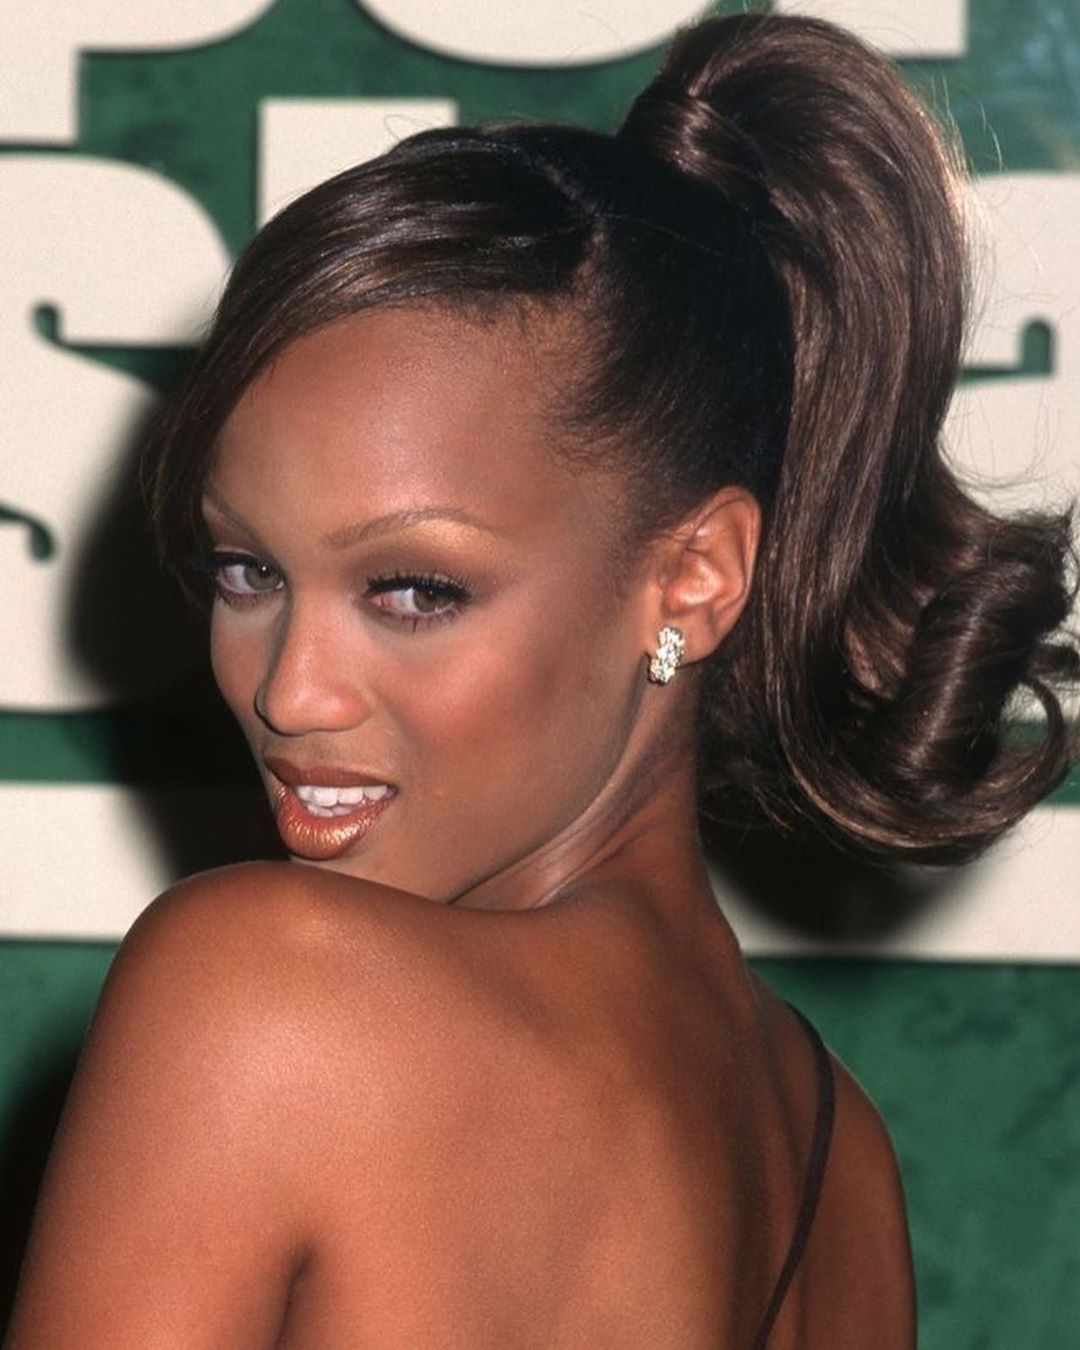 Pin By Kennedy On Hair In 2020 Hairdo Tyra Banks Hair Tyra